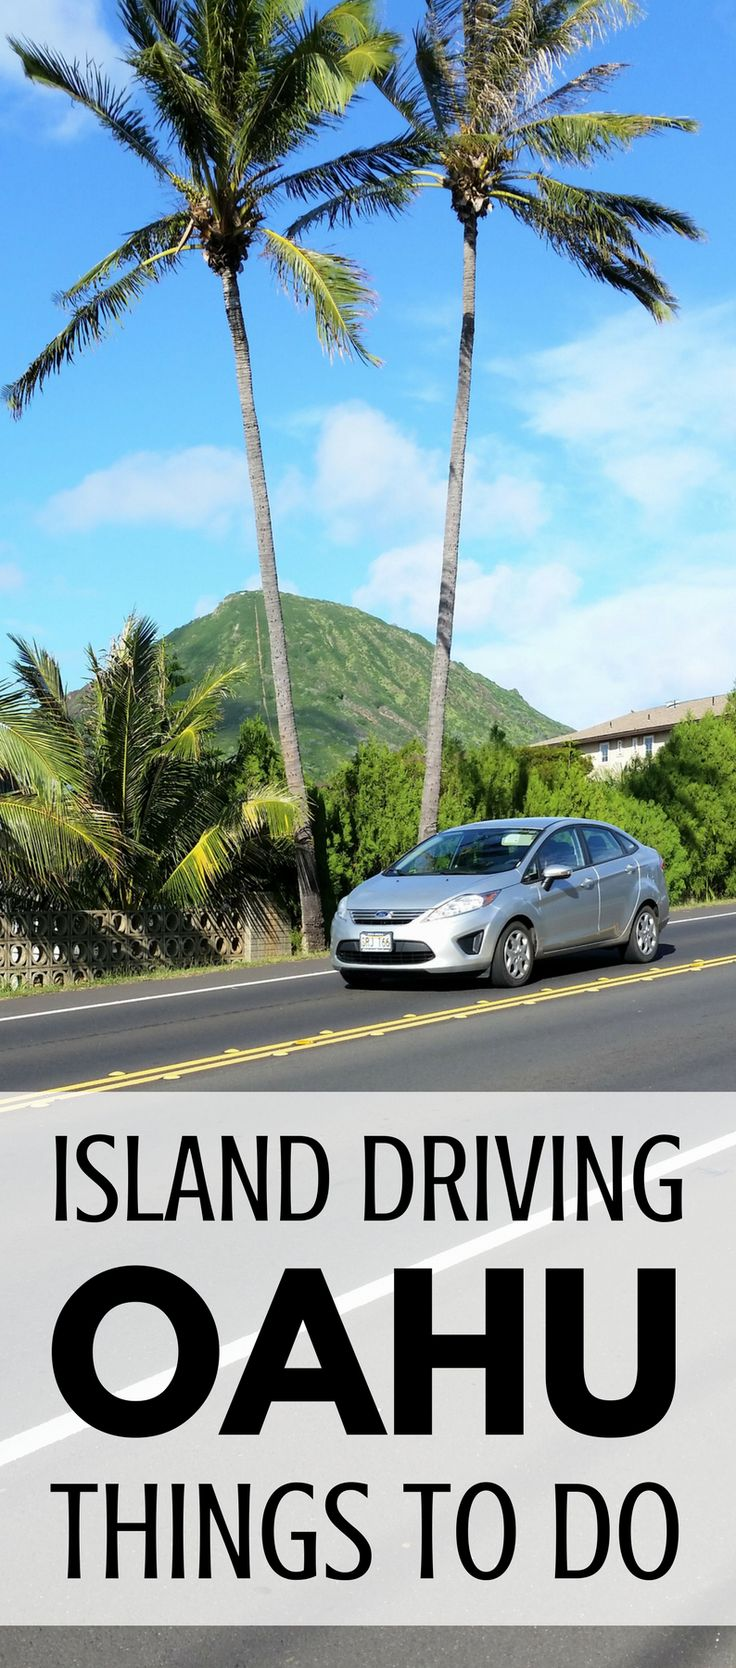 Island driving, things to do on Oahu. Hawaii vacation tips. Free, cheap, affordable. Scenic drive with DIY circle island driving tour. Stop for easy hikes, snorkeling beaches, food, restaurants, shopping activities. From Waikiki and Honolulu to North Shore, and more on the day trip itinerary. Start the checklist of USA bucket list destinations for world trip adventures on a budget. Save money with travel tips, ideas! Good for destination wedding or honeymoon.. #oahu #hawaii